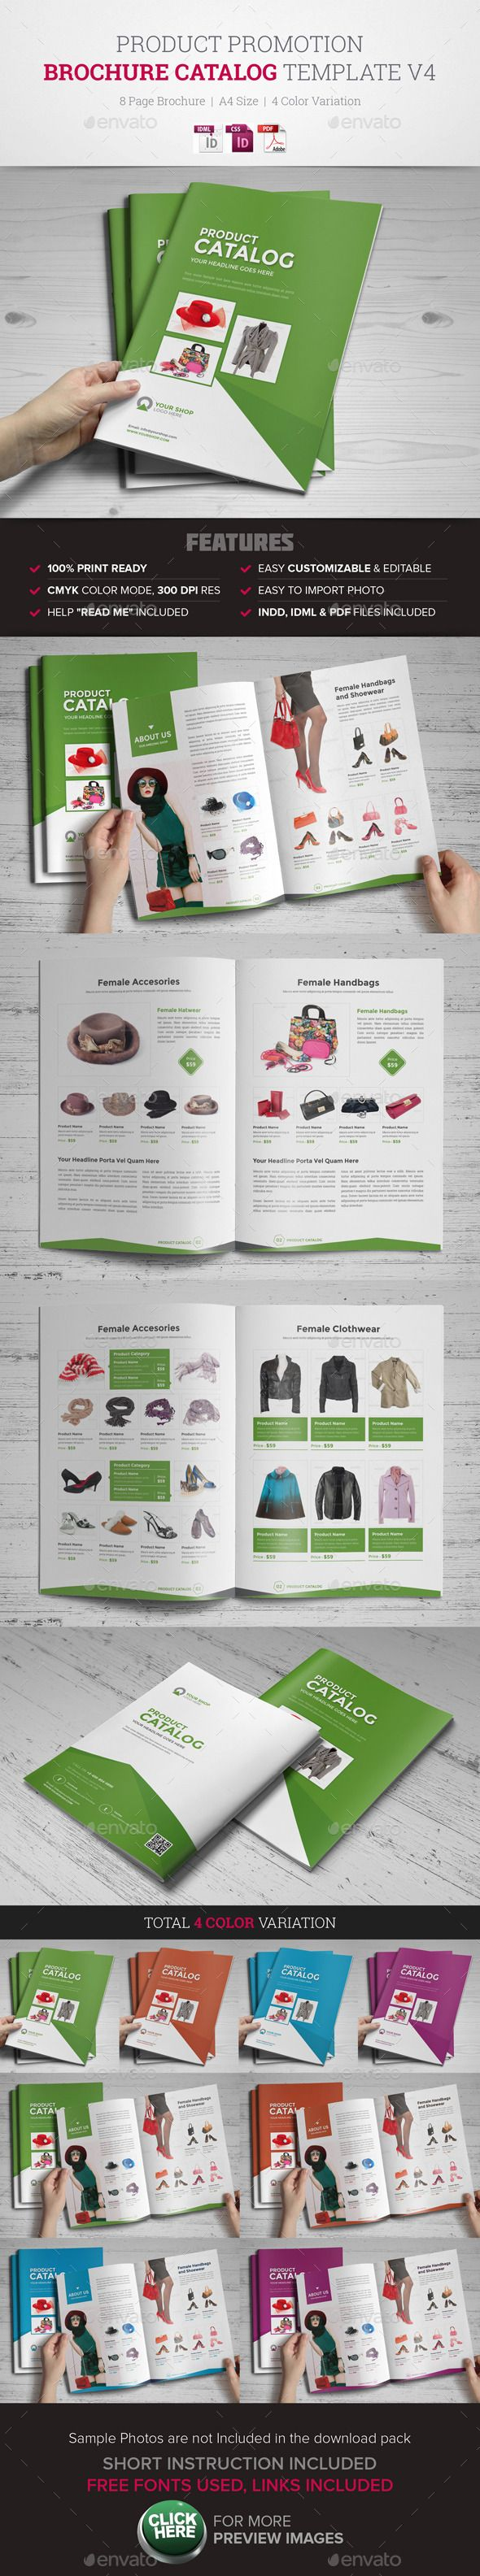 Magnificent 10 Best Resume Designs Thick 100 Free Resume Builder And Download Round 100 Template 18th Birthday Invitations Templates Young 2 Binder Spine Template Gray2 Weeks Notice Template 25  Best Ideas About Product Catalog Template On Pinterest ..